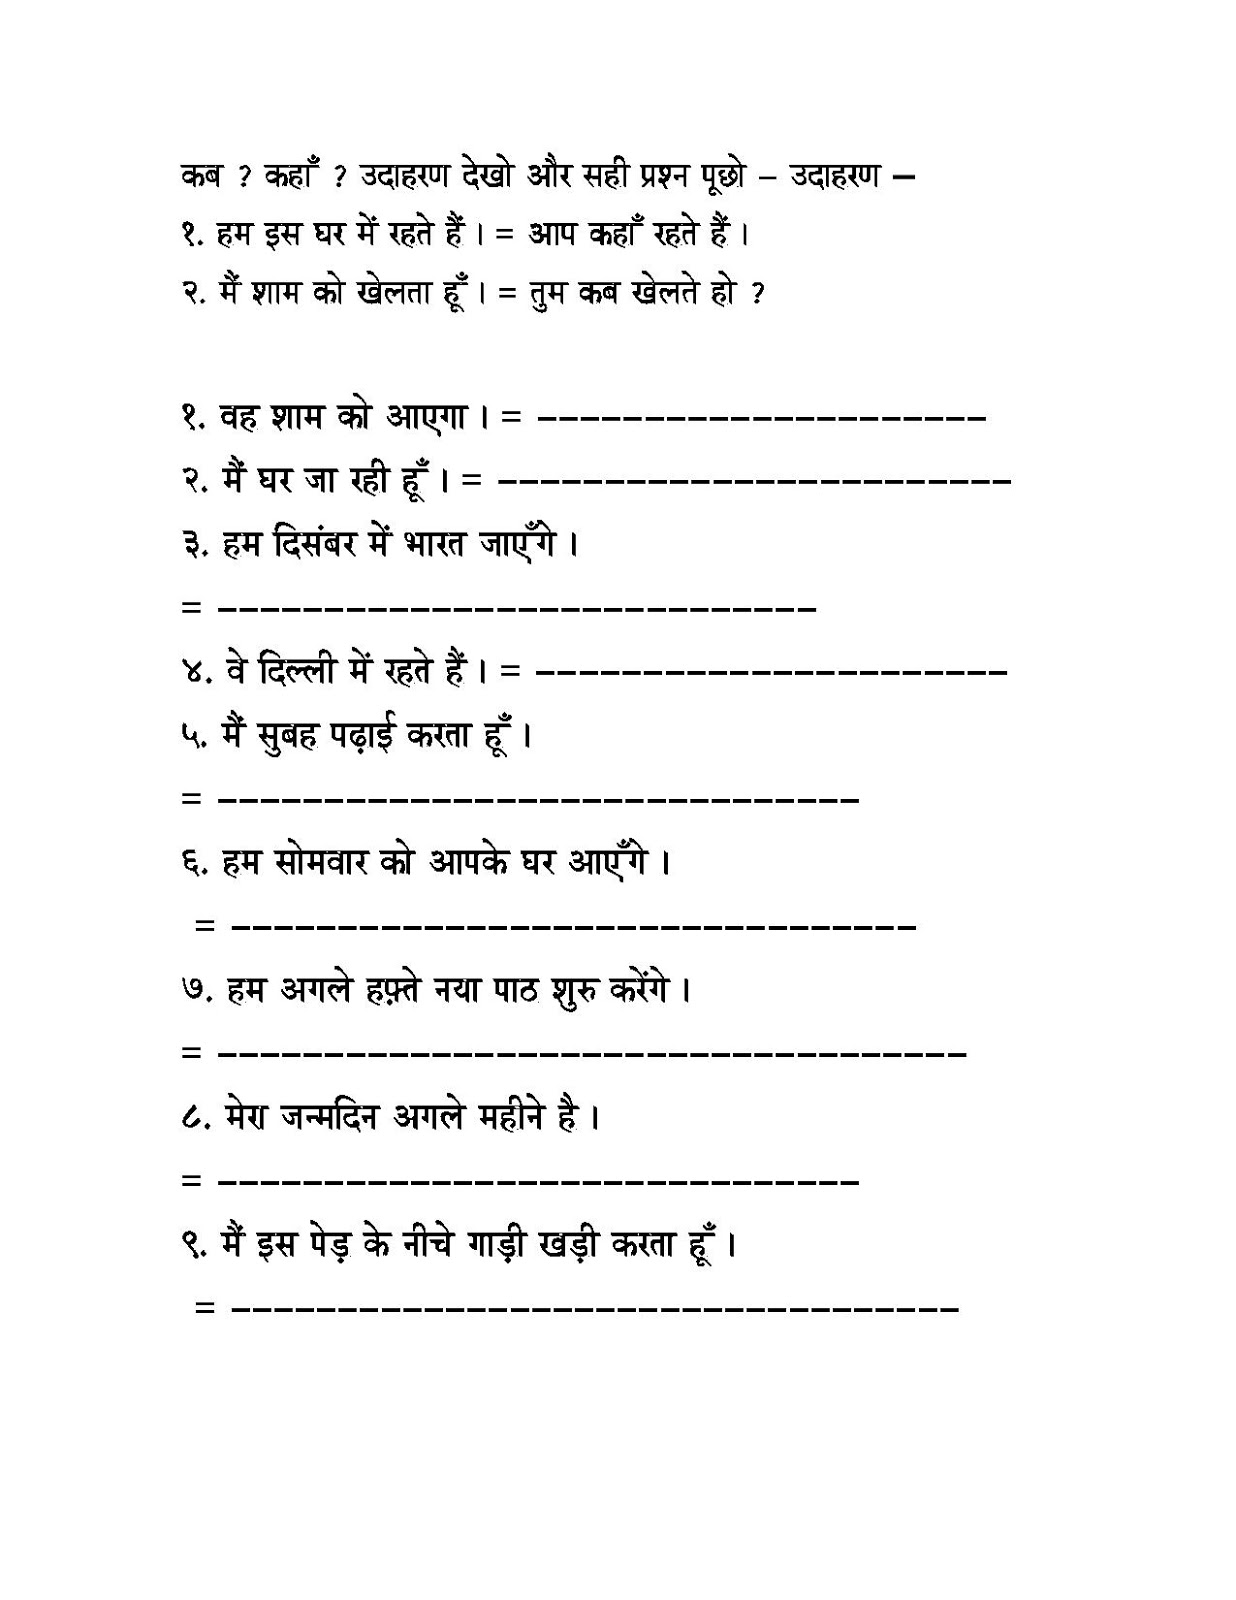 hindi grammar worksheets for grade 6 hindi grammar worksheets grade 6 worksheetshindi work. Black Bedroom Furniture Sets. Home Design Ideas